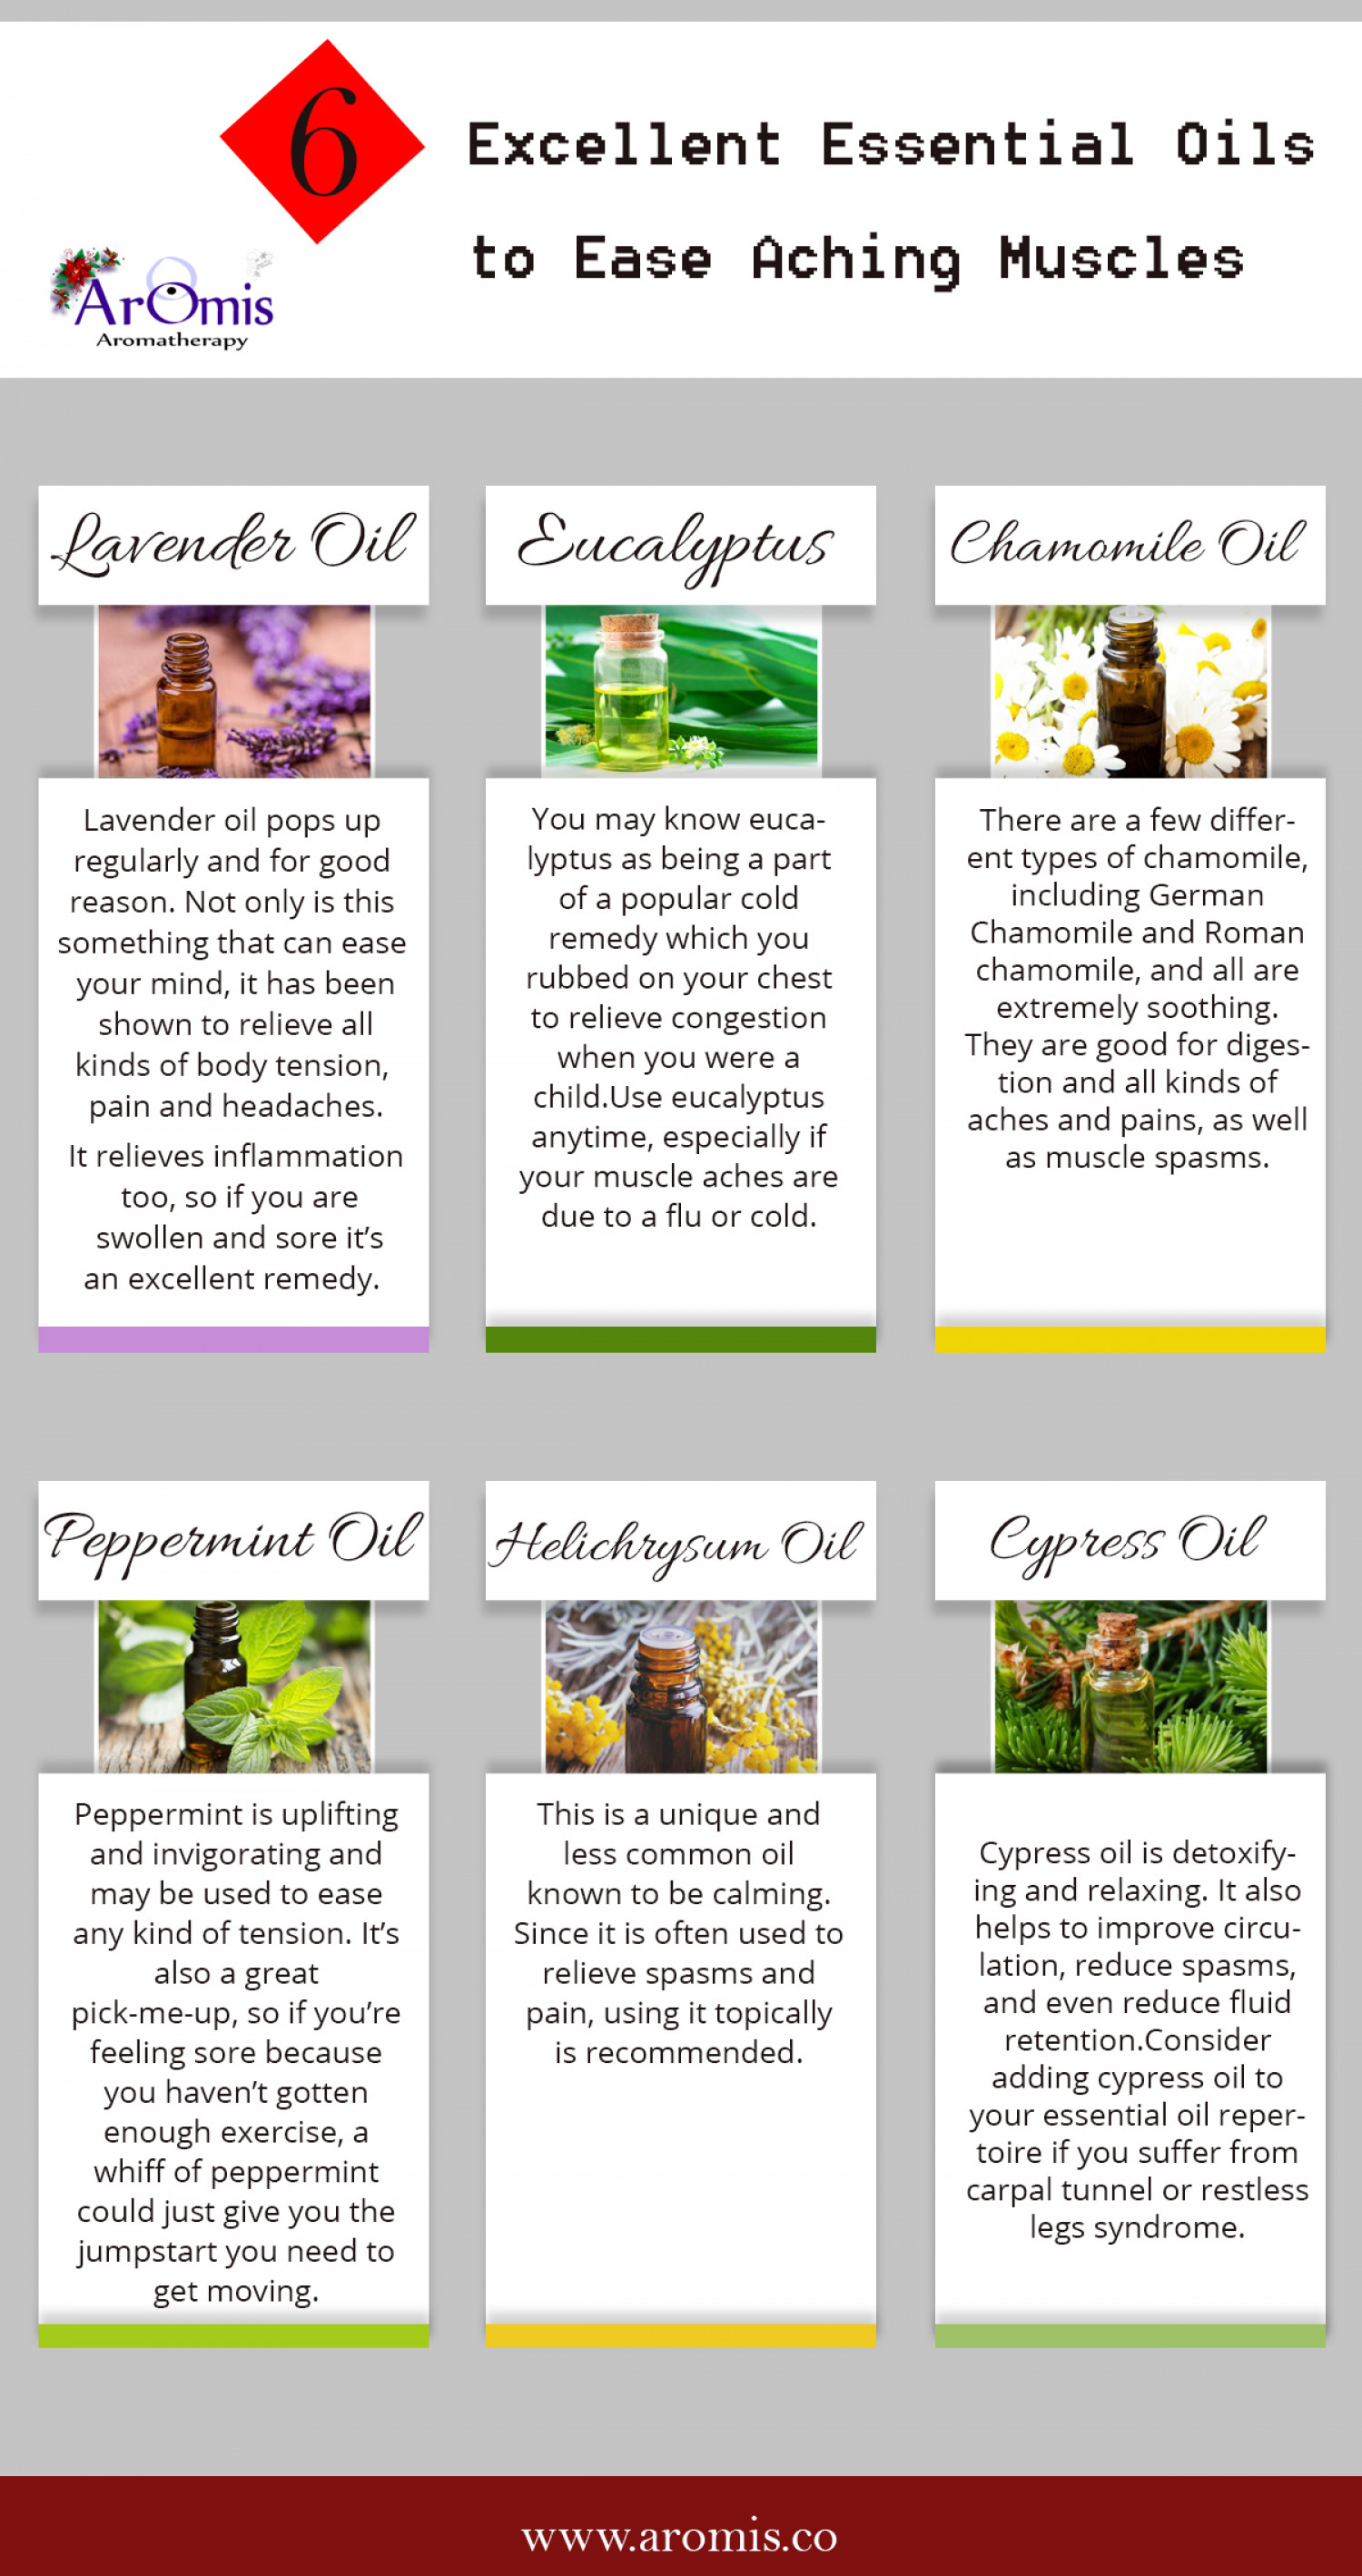 6 Excellent Essential Oils to Ease Aching Muscles Infographic